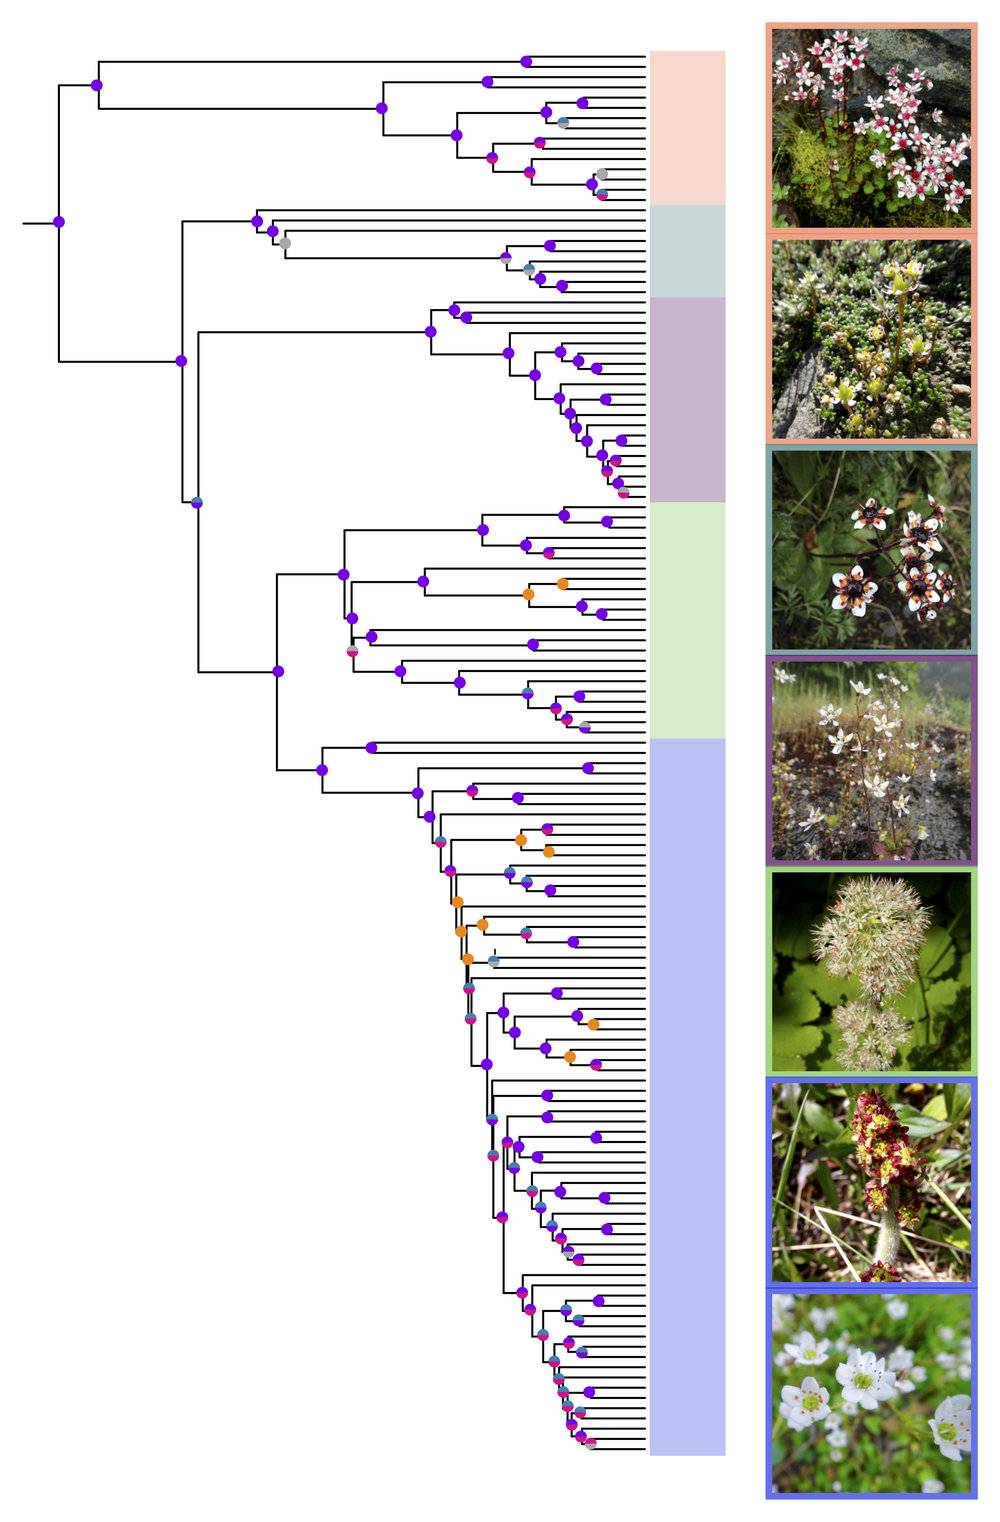 Rebecca_Stubbs_phylogeny_micranthes